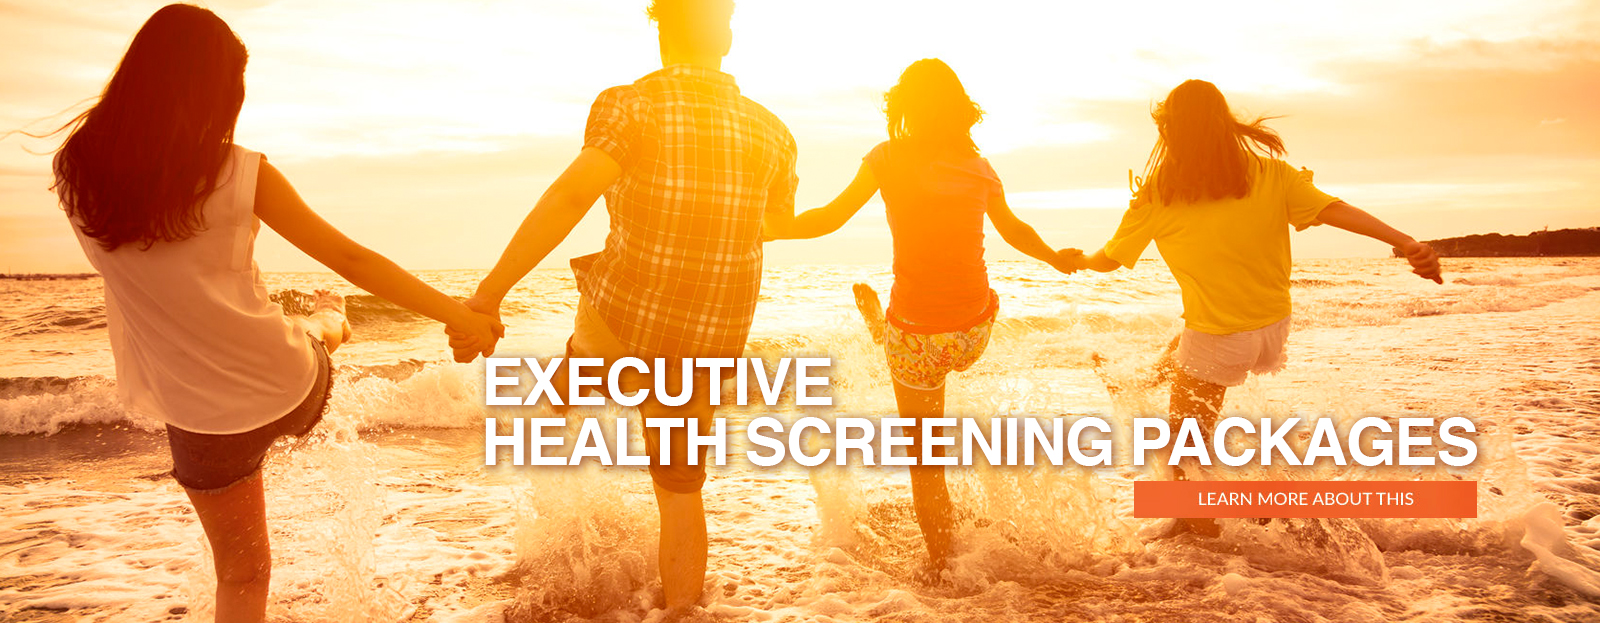 Executive Health Screening Packages